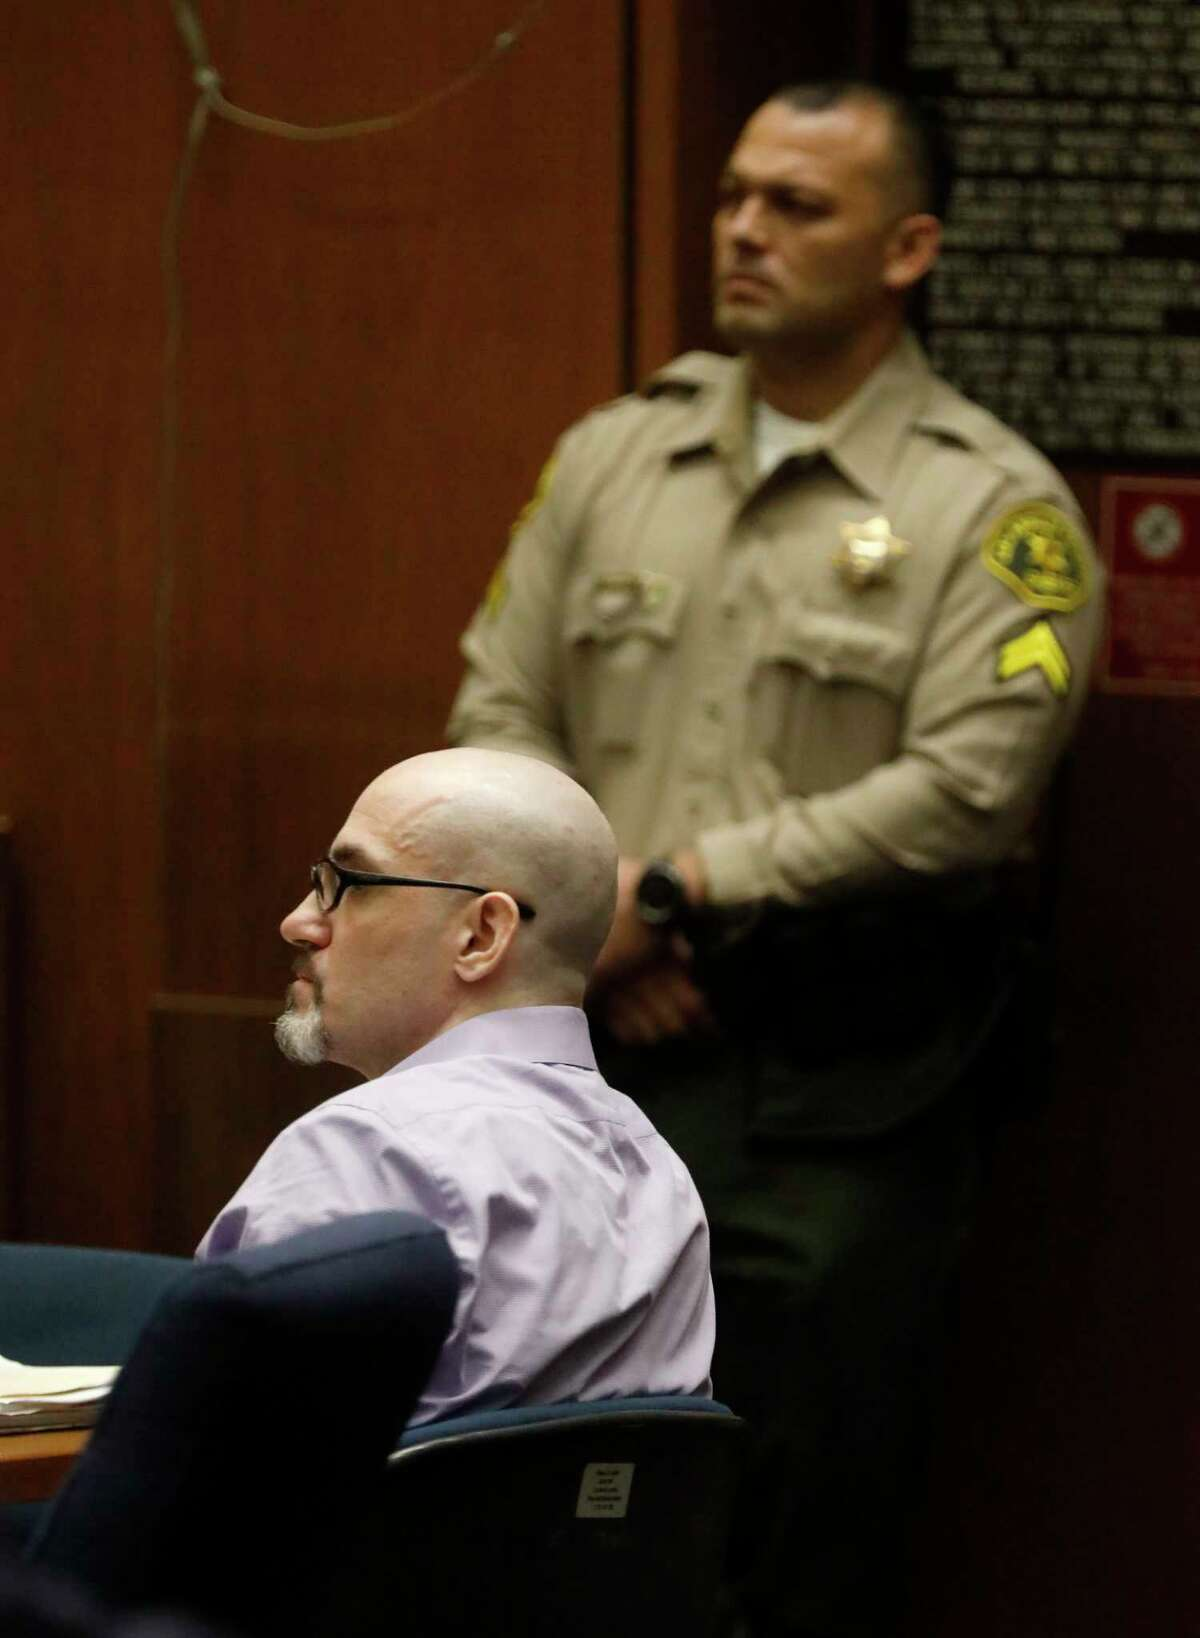 FILE - In this May 29, 2019, file photo, Michael Gargiulo, sitting, listens to the testimony of Ashton Kutcher during Gargiulo's murder trial at Los Angeles Superior Court. Gargiulo has pleaded not guilty to two counts of murder and an attempted-murder charge stemming from attacks in the Los Angeles area between 2001 and 2008, including the death of Kutcher's former girlfriend, 22-year-old Ashley Ellerin. (Genaro Molina/Los Angeles Times via AP, Pool, File)